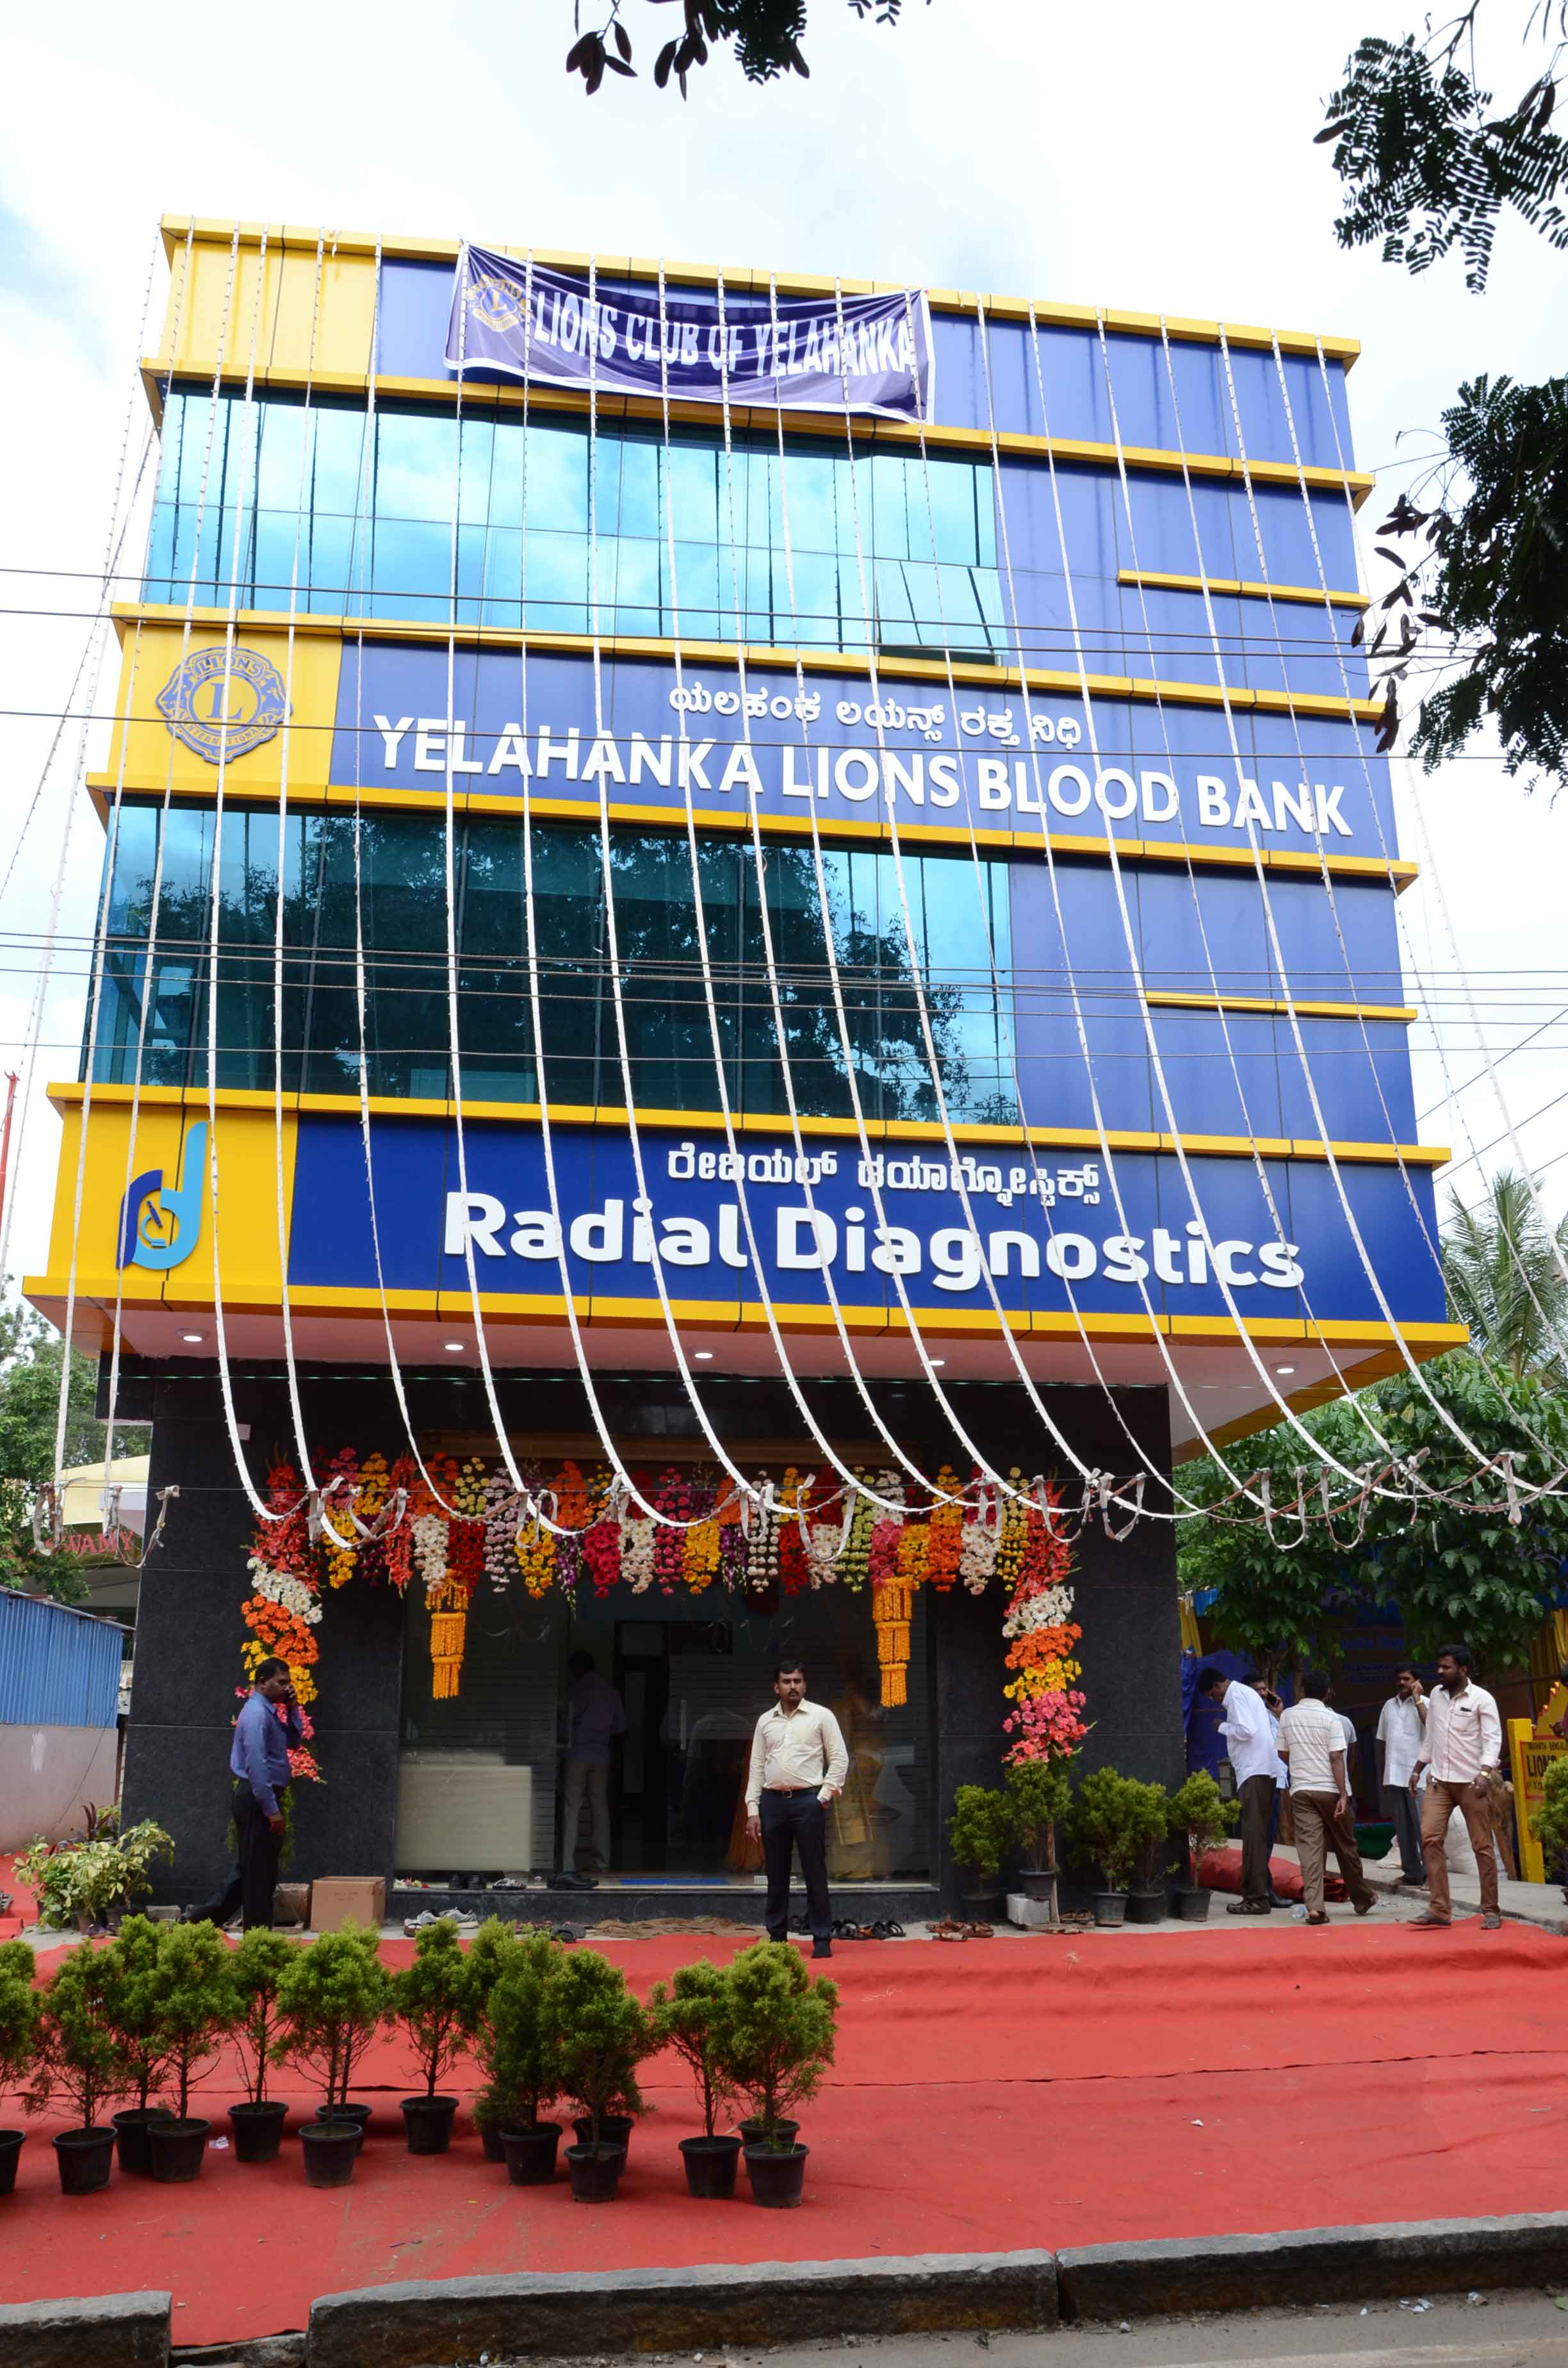 RADIAL DIAGNOSTICS, COVID -19 TEST CENTRE,  CORONA TESTING CENTRE, CORONA VACCINATION CENTRE , DIAGNOSTICS CENTER, COVID -19 TEST CENTRE IN YELAHANKA., CORONA TESTING CENTRE IN YELAHANKA,    CORONA VACCINATION CENTRE , DIAGNOSTICS  HEALTH PACKAGES,  DIAGNOSTICS CENTER,HEALTH PACKAGES,  RANDOM BLOODSUGAR,RBS,TSH,HIV,HCV,ECLIA,HBSAG,ECLIA,VDRL,RPR,BLOOD GROUP , 	COMPLETE HAEMOGRAM, PERIPHERAL SMEAR,RETICULOCYTE COUNT,IRON PROFILE, COMPLETE HAEMOGRAM, PERIPHERAL SMEAR, RETICULOCYTE COUNT, FOLIC ACID, IRON PROFILE, VITAMIN B12, DIABETIC PROFILE, URINE MICROALBUMINURIA, BLOOD UREA, CREATININE, POST PRANDIAL BLOOD SUGAR (PPBS), COMPLETE URINE ANALYSIS, LIPID PROFILE TEST,  HAEMOGLOBULIN (HbA1C), FASTING BLOOD SUGAR (FBS) RADIAL SUPREME HEALTH PLAN •	PHOSPHORUS •	URIC ACID •	GLYCATED HAEMOGLOBULIN (HbA1C) •	BLOOD UREA •	BLOOD UREA NITROGEN •	CREATININE •	ELECTROLYTES •	FASTING BLOOD SUGAR (FBS) •	IRON •	CALCIUM •	VITAMIN D 25 HYDROXY •	URINE MICROALBUMINURIA •	COMPLETE HAEMOGRAM •	PERIPHERAL SMEAR •	LIPID PROFILE TEST •	LIVER FUNCTION TEST (LFT) •	POST PRANDIAL BLOOD SUGAR (PPBS) •	Body Mass Index •	TOTAL PROSTATIC SPECIFIC ANTIGEN (PSA) •	eGFR •	CA 125 •	THYROID PROFILE (T3,T4,TSH) •	VITAMIN B12 •	HBsAg •	HCV •	ELECTROCARDIOGRAM (ECG) •	COMPLETE URINE ANALYSIS •	DIGITAL X - RAY •	COMPLETE HAEMOGRAM •	PERIPHERAL SMEAR •	CALCIUM •	URIC ACID •	BLOOD UREA •	BLOOD UREA NITROGEN •	CREATININE •	ELECTROLYTES •	LIPID PROFILE TEST •	LIVER FUNCTION TEST (LFT) •	RANDOM BLOOD SUGAR (RBS) •	eGFR •	THYROID PROFILE (T3,T4,TSH) •	VITAMIN B12 •	GLYCATED HAEMOGLOBULIN (HbA1C) •	FASTING BLOOD SUGAR (FBS) SENIOR CITIZEN PACKAGE FOR MEN •	SGOT (AST) •	SGPT (ALT) •	FREE PSA •	HOMOCYSTEINE •	High sensitivity C reactive protein (hsCRP) •	TSH •	ELECTROCARDIOGRAM (ECG) •	COMPLETE URINE ANALYSIS •	DIGITAL X-RAY •	LIPID PROFILE TEST •	IRON •	FASTING BLOOD SUGAR (FBS) •	COMPLETE HAEMOGRAM •	VITAMIN D 25 HYDROXY •	CALCIUM •	BLOOD UREA •	CREATININE •	ELECTROLYTES RADIAL REGULAR HEALTH PLAN •	ELECTROCARDIOGRAM (ECG) •	DIGITAL X RAY •	PERIPHERAL SMEAR •	PHOSPHORUS •	POST PRANDIAL BLOOD SUGAR (PPBS) •	eGFR •	HBsAg •	Body Mass Index •	COMPLETE URINE ANALYSIS •	COMPLETE HAEMOGRAM •	URIC ACID •	LIVER FUNCTION TEST (LFT) •	LIPID PROFILE TEST •	FASTING BLOOD SUGAR (FBS) •	ELECTROLYTES •	CREATININE •	BLOOD UREA NITROGEN •	BLOOD UREA •	THYROID PROFILE (T3,T4,TSH) •	CALCIUM RADIAL PRIME HEALTH PLAN •	PERIPHERAL SMEAR •	CALCIUM •	PHOSPHORUS •	URIC ACID •	GLYCATED HAEMOGLOBULIN (HbA1C) •	BLOOD UREA •	BLOOD UREA NITROGEN •	CREATININE •	ELECTROLYTES •	COMPLETE HAEMOGRAM •	FASTING BLOOD SUGAR (FBS) •	IRON •	Body Mass Index •	TOTAL PROSTATIC SPECIFIC ANTIGEN (PSA) •	LIPID PROFILE TEST •	LIVER FUNCTION TEST (LFT) •	POST PRANDIAL BLOOD SUGAR (PPBS) •	eGFR •	CA 125 •	THYROID PROFILE (T3,T4,TSH) •	HBsAg •	ELECTROCARDIOGRAM (ECG) •	COMPLETE URINE ANALYSIS •	DIGITAL X-RAY RADIAL DIABETIC HEALTH PLAN •	FASTING BLOOD SUGAR (FBS) •	URINE MICROALBUMINURIA •	GLYCATED HAEMOGLOBULIN (HbA1C) •	CREATININE •	POST PRANDIAL BLOOD SUGAR (PPBS) •	TOTAL CHOLESTEROL •	Egfr  HIV HBSAG HCV BY ECLIA FOR DIALYSIS •	HIV (ECLIA) •	HBsAg (ECLIA) •	HCV ELISA DIABETIC PROFILE •	URINE MICROALBUMINURIA •	BLOOD UREA •	CREATININE •	POST PRANDIAL BLOOD SUGAR (PPBS) •	COMPLETE URINE ANALYSIS •	LIPID PROFILE TEST •	GLYCATED HAEMOGLOBULIN (HbA1C) •	FASTING BLOOD SUGAR (FBS) ANEMIA PROFILE II •	COMPLETE HAEMOGRAM •	PERIPHERAL SMEAR •	RETICULOCYTE COUNT •	FOLIC ACID •	IRON PROFILE •	VITAMIN B12 ANEMIA PROFILE I •	COMPLETE HAEMOGRAM •	PERIPHERAL SMEAR •	RETICULOCYTE COUNT •	IRON PROFILE ANC PROFILE •	CBC •	RANDOM BLOOD SUGAR (RBS) •	TSH •	HIV (ECLIA) •	HCV (ECLIA) •	HBsAg (ECLIA) •	VDRL (RPR) •	BLOOD GROUP & RH TYPE •	COMPLETE URINE ANALYSIS